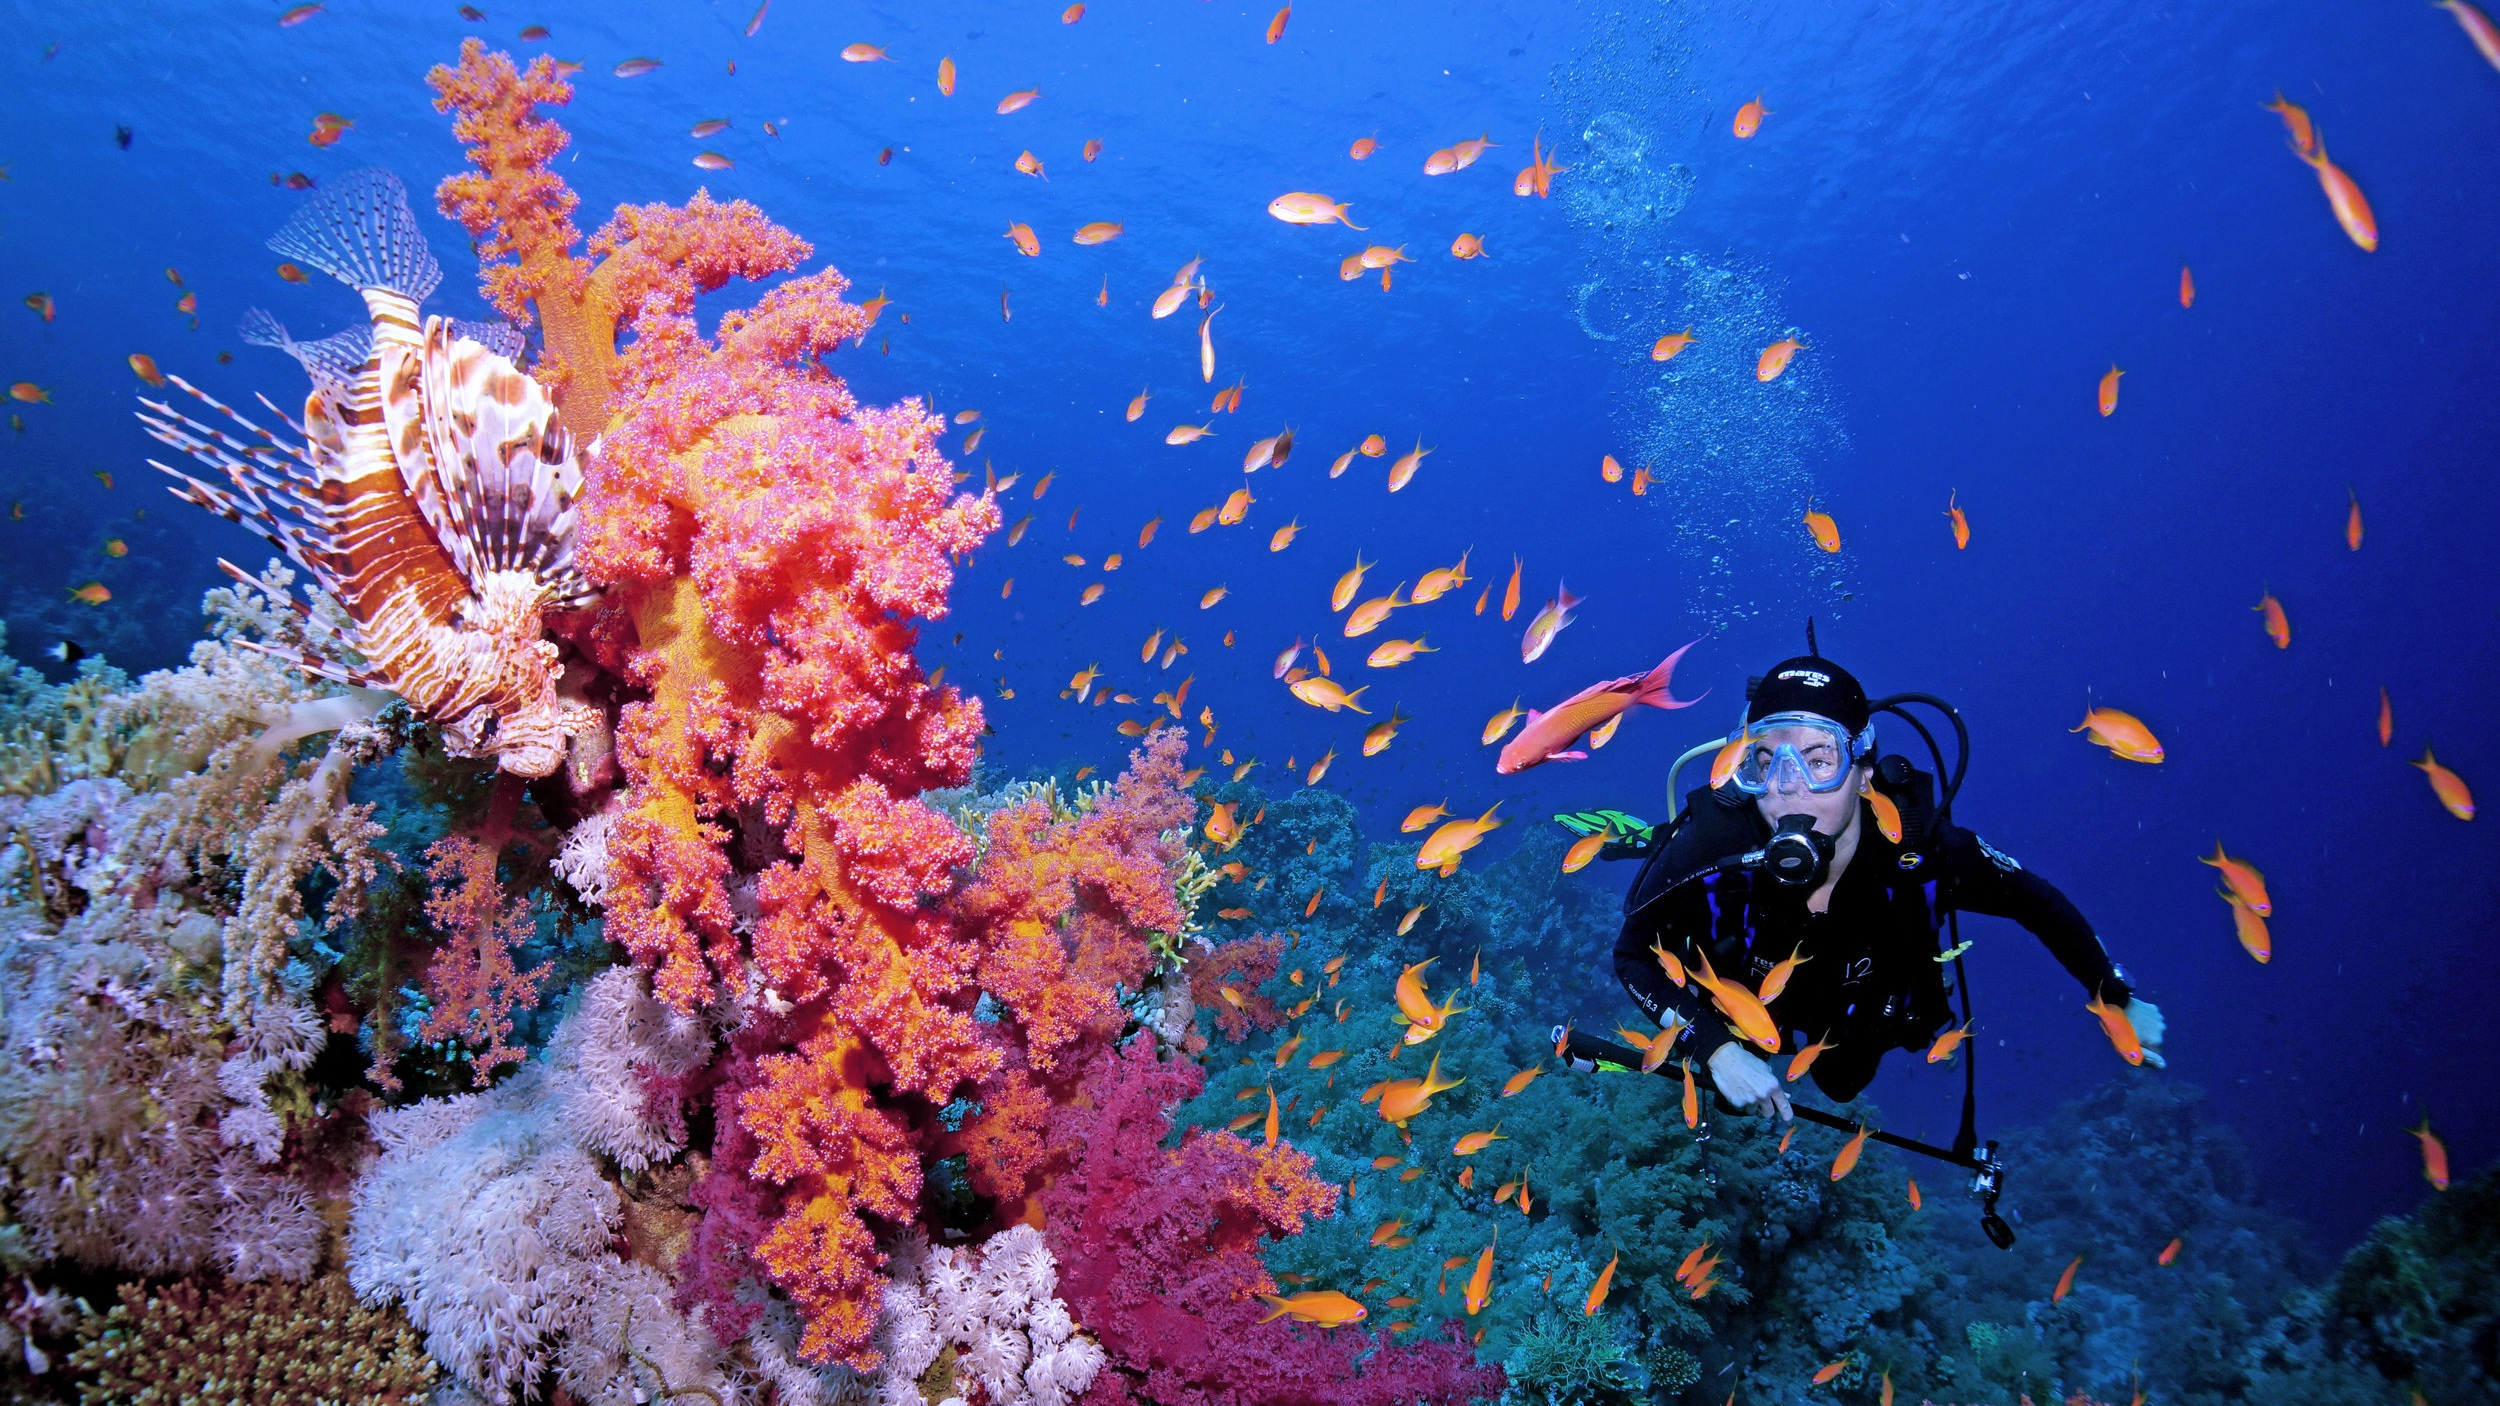 A thriving coral reef in the Red Sea.  Photo by Cinzia Osele Bismarck / Coral Reef Image Bank